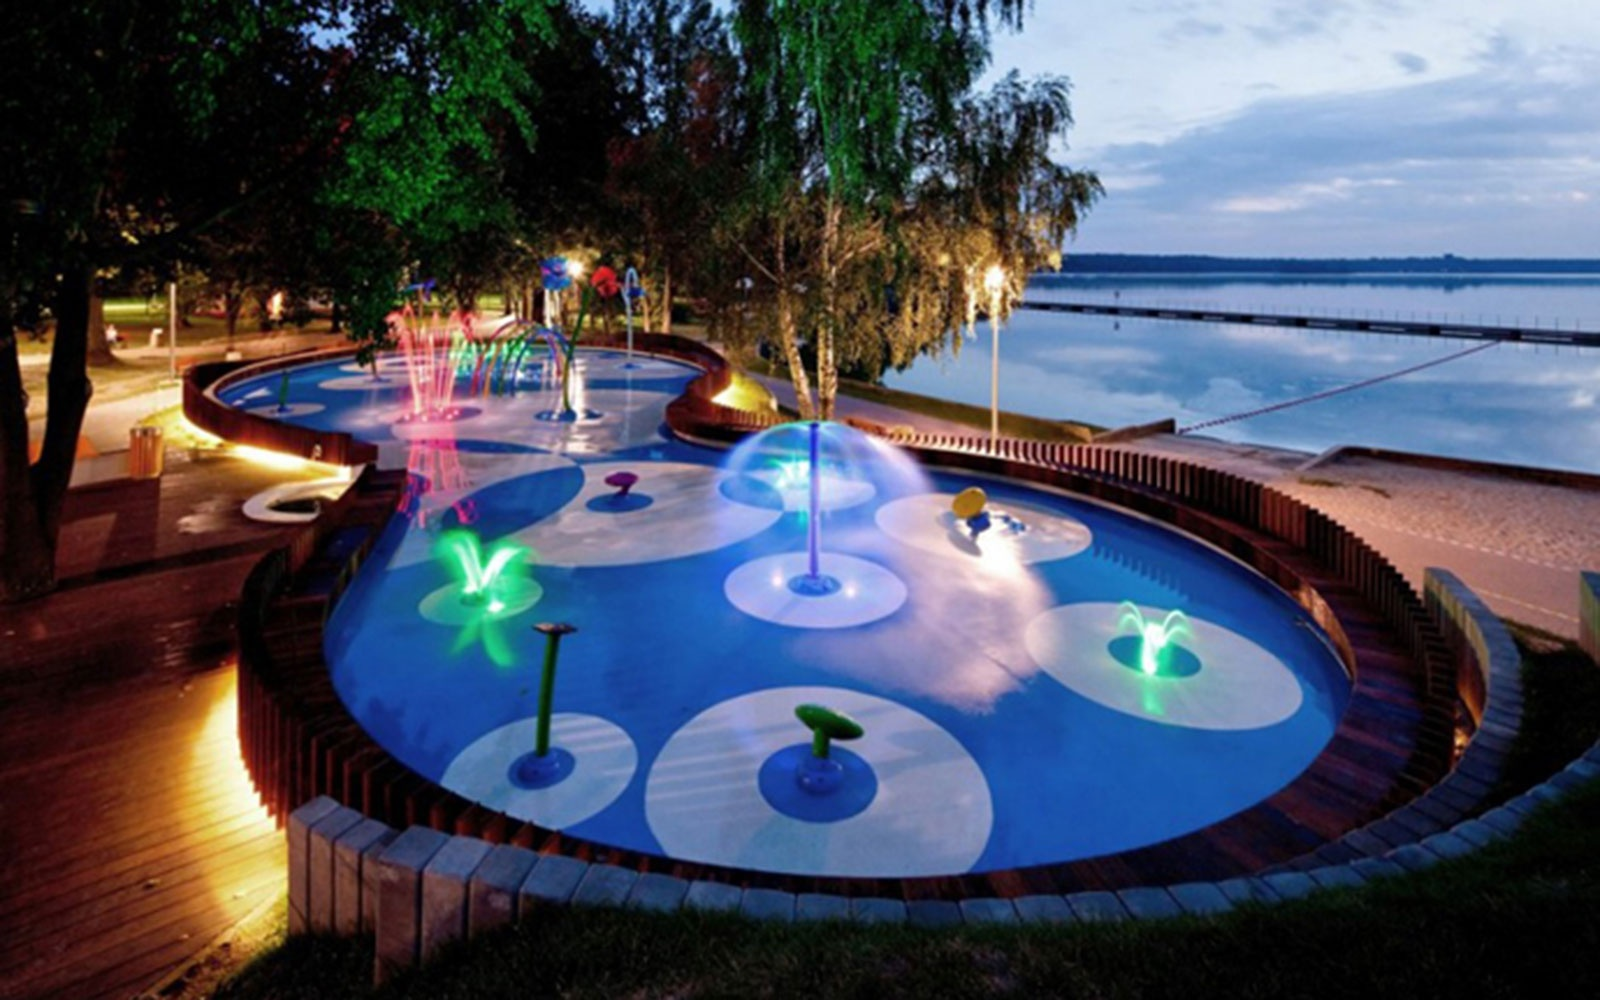 Water Playground, Tychy, Poland